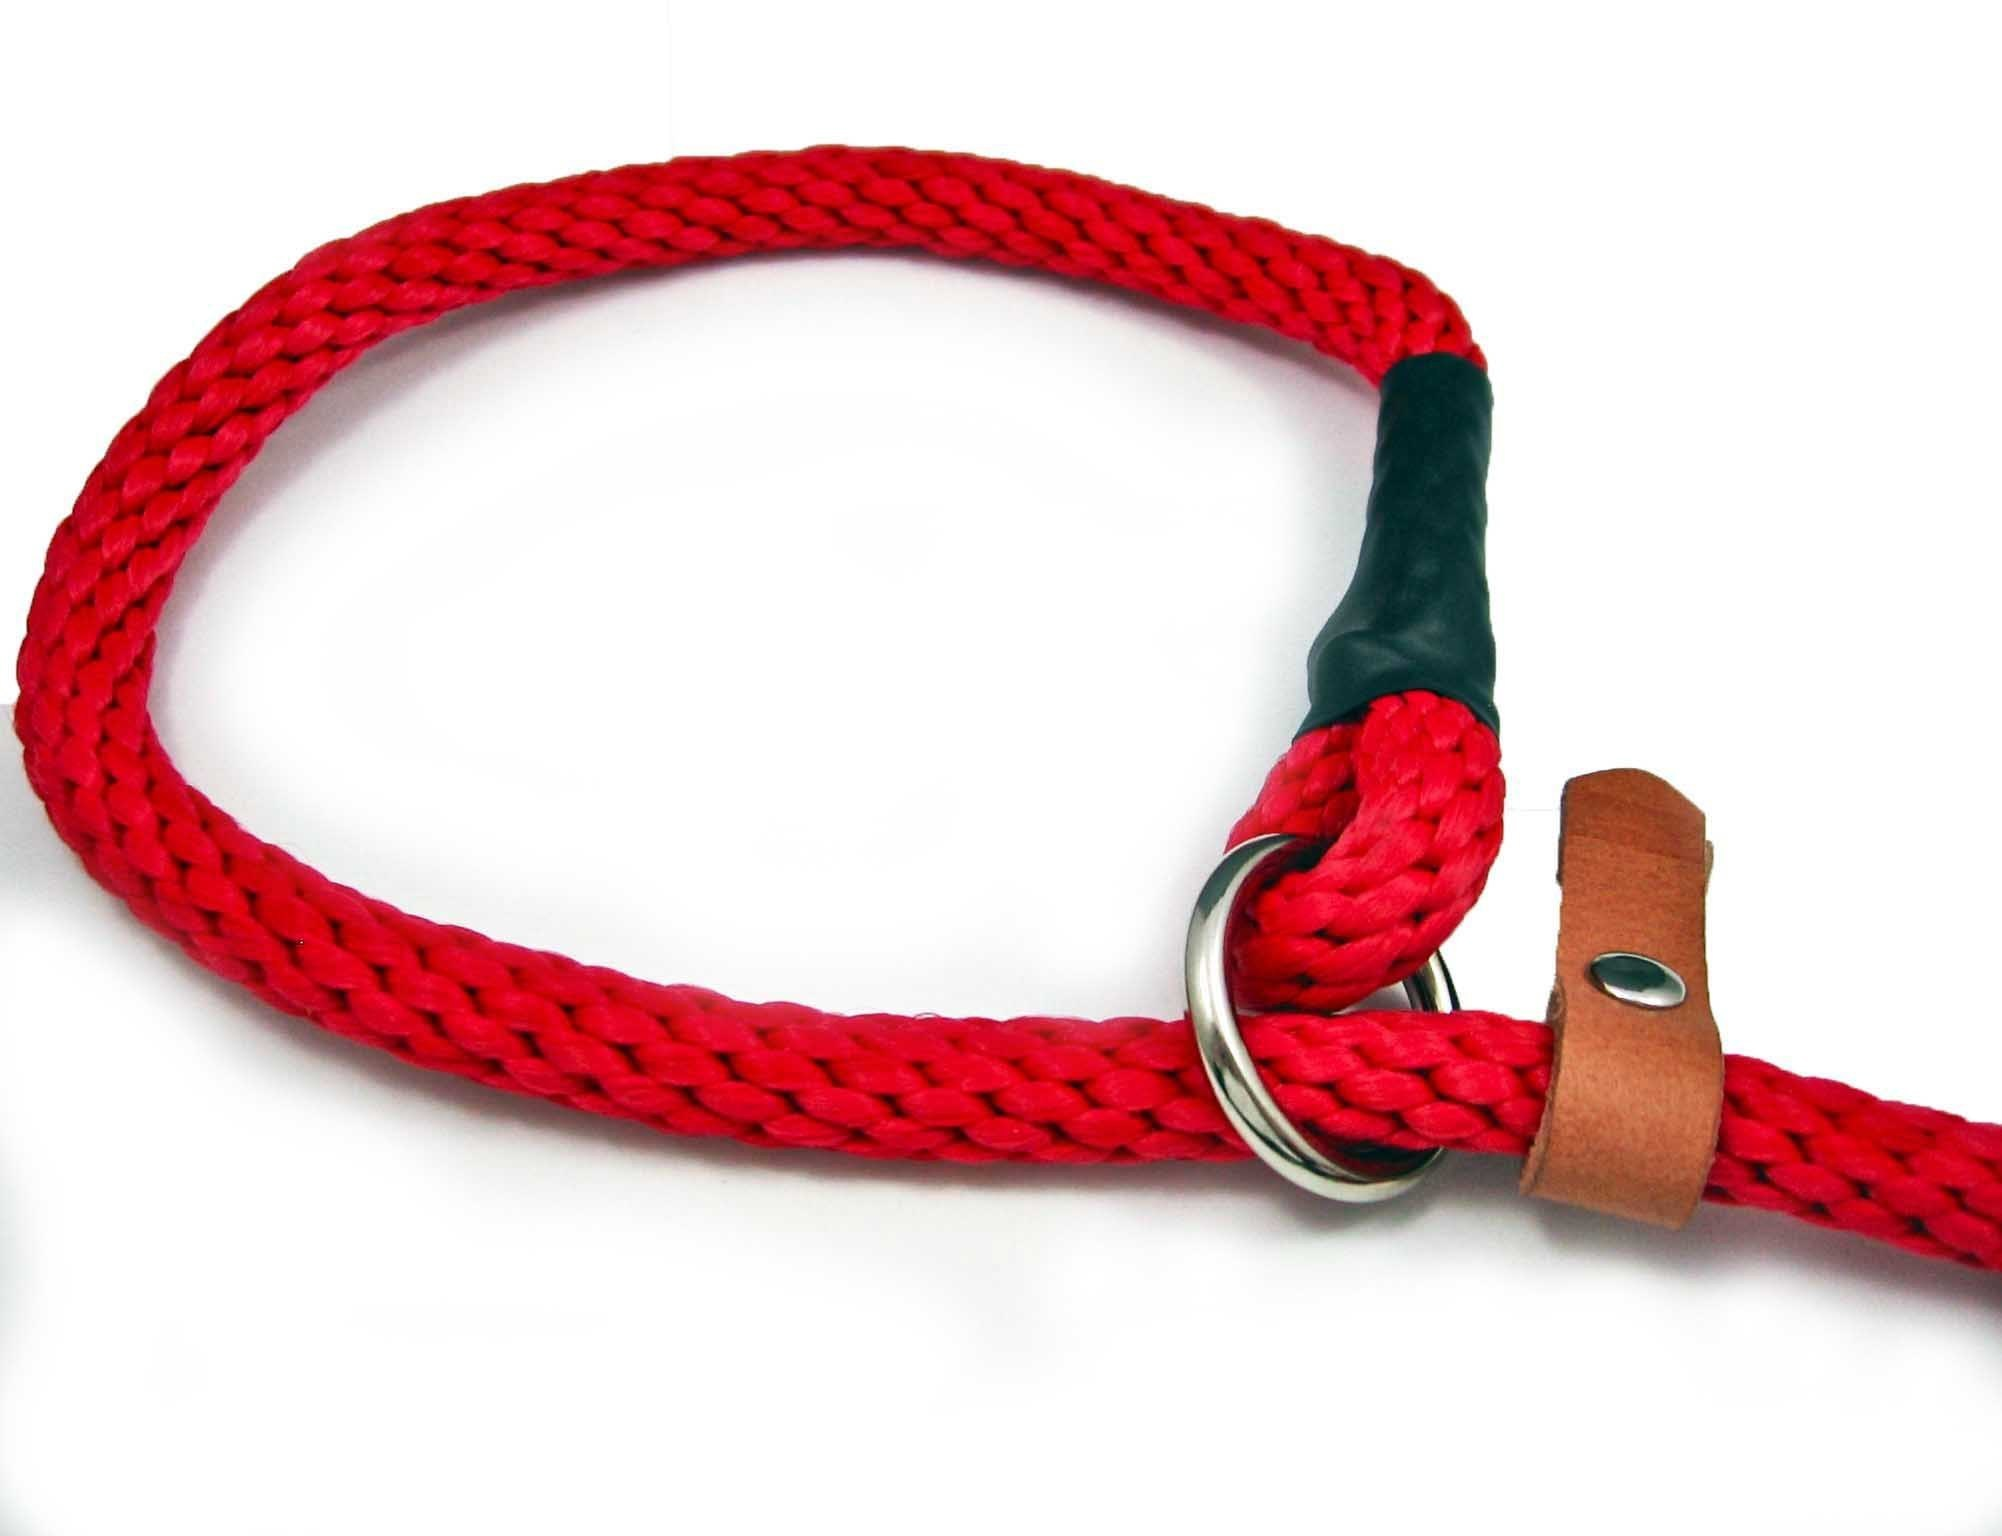 The English: 6 Ft English Leash With Neck Loop and Rubber Handle